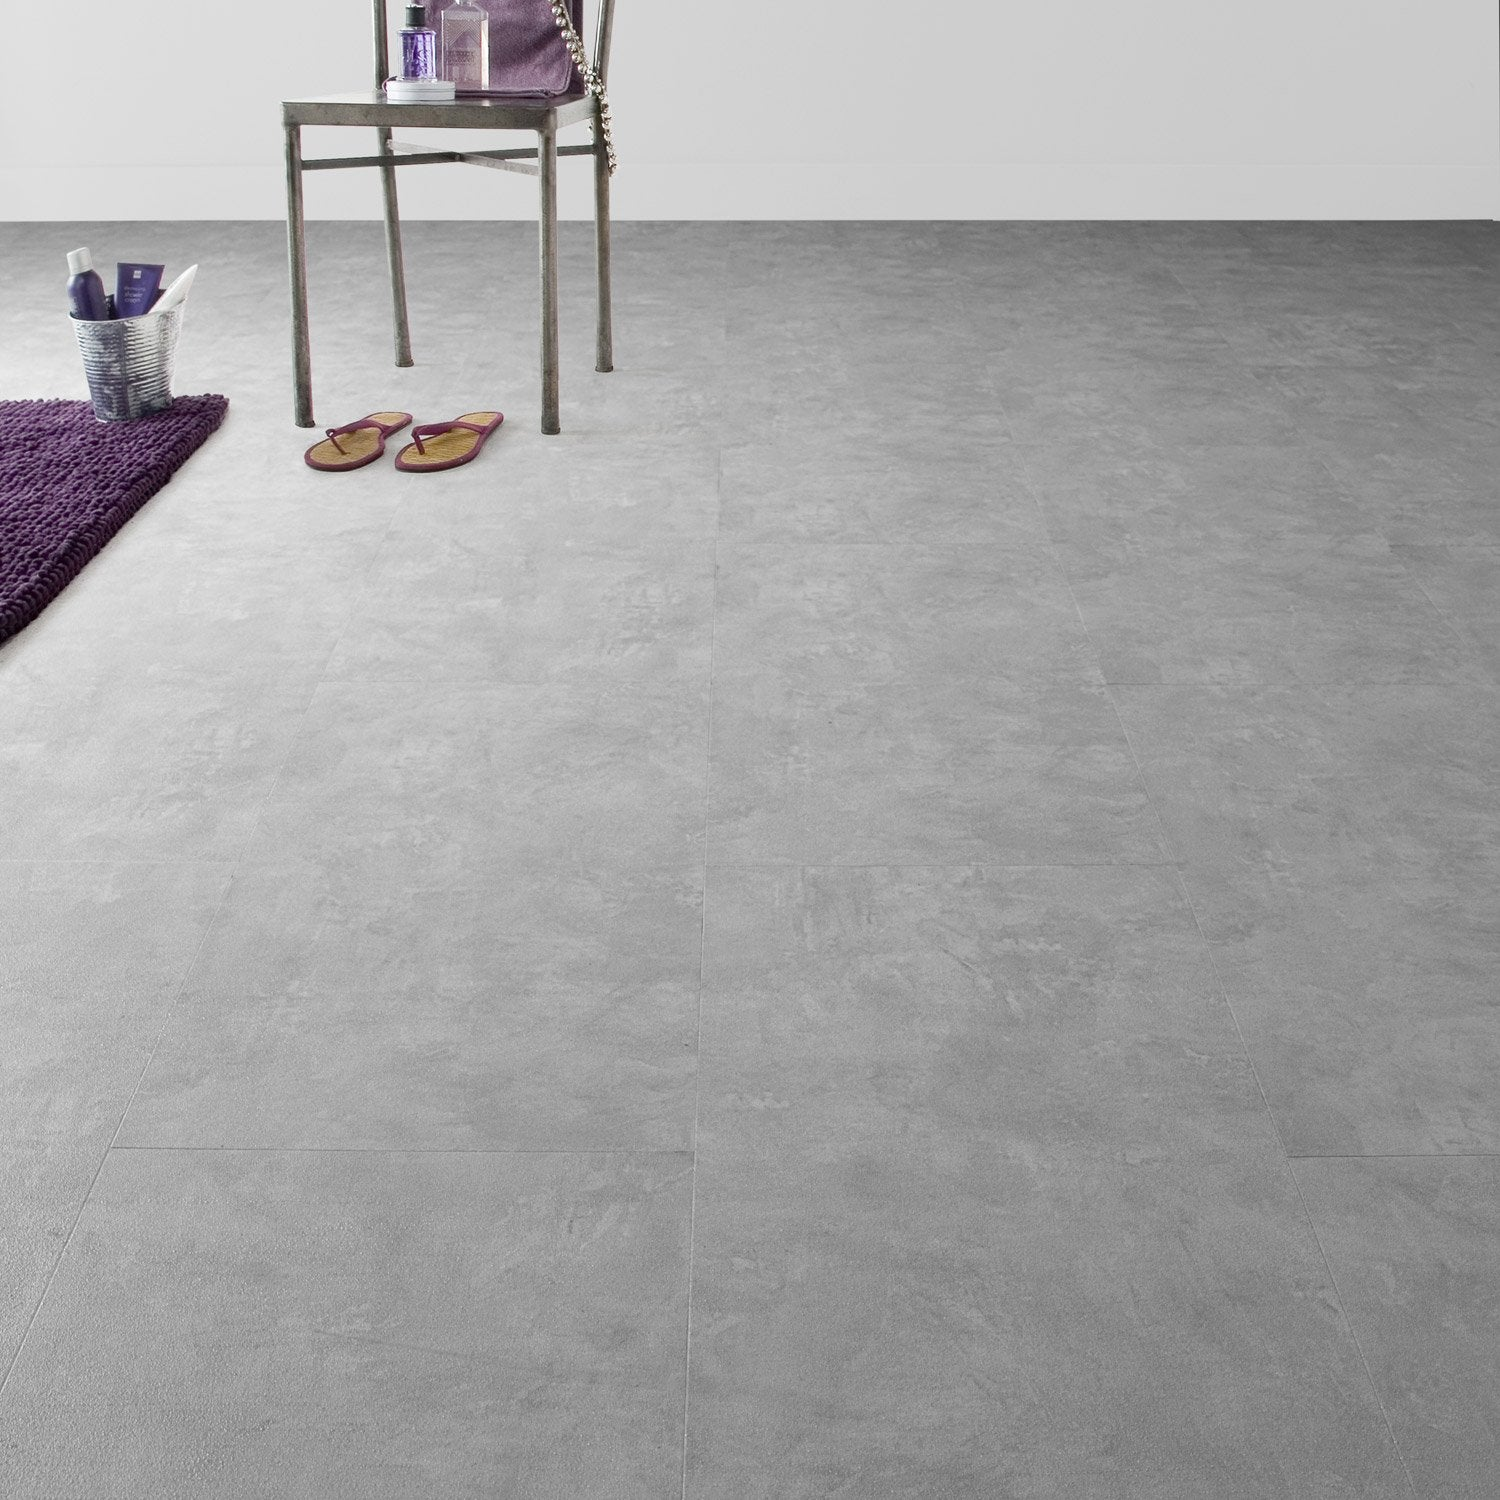 Dalle pvc clipsable gris industry clear senso lock gerflor leroy merlin - Dalle pvc leroy merlin ...